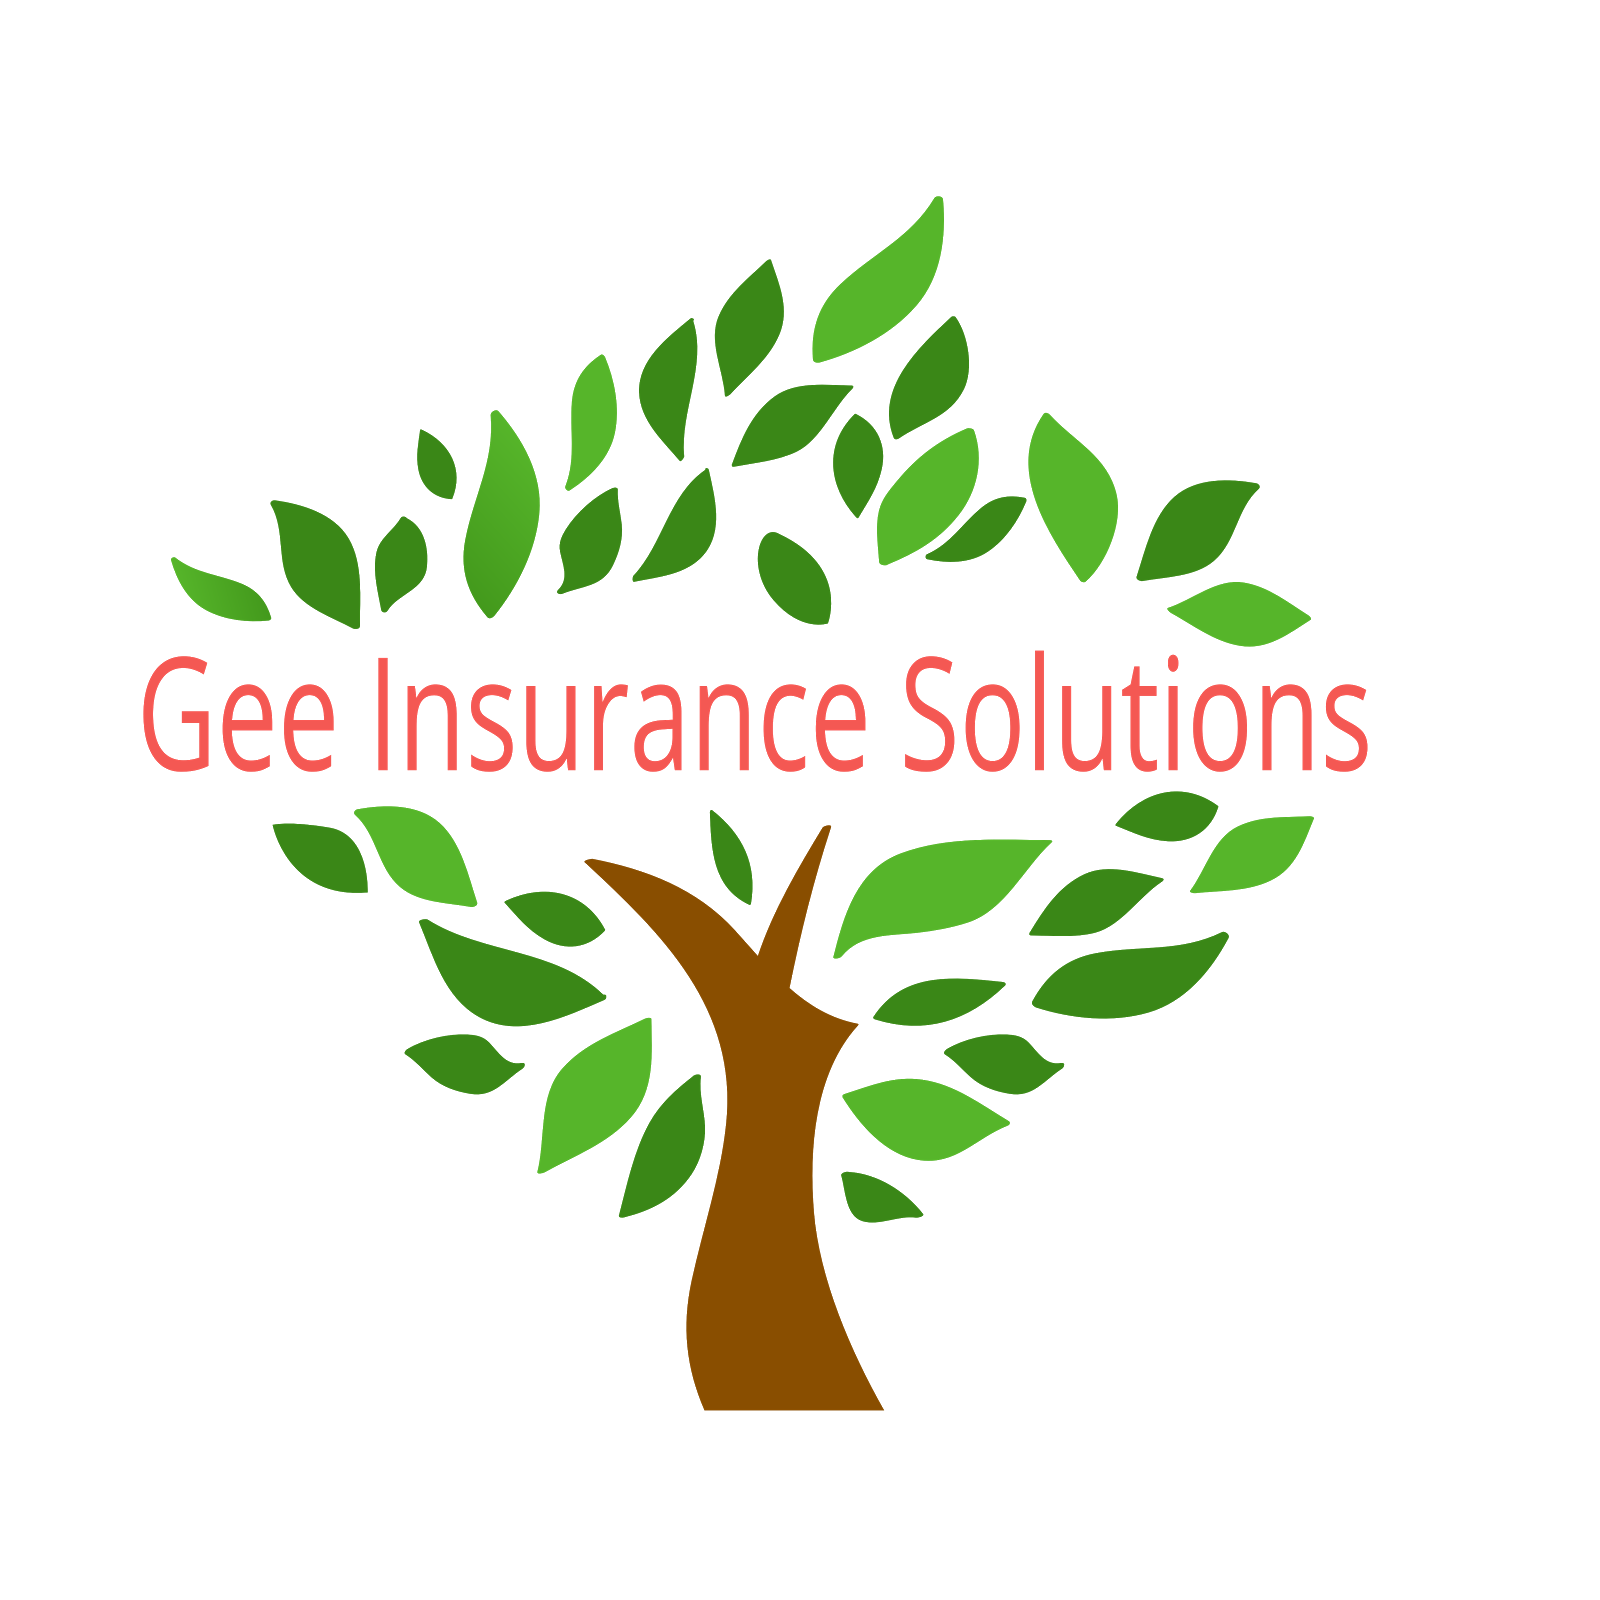 Gee Insurance Solutions